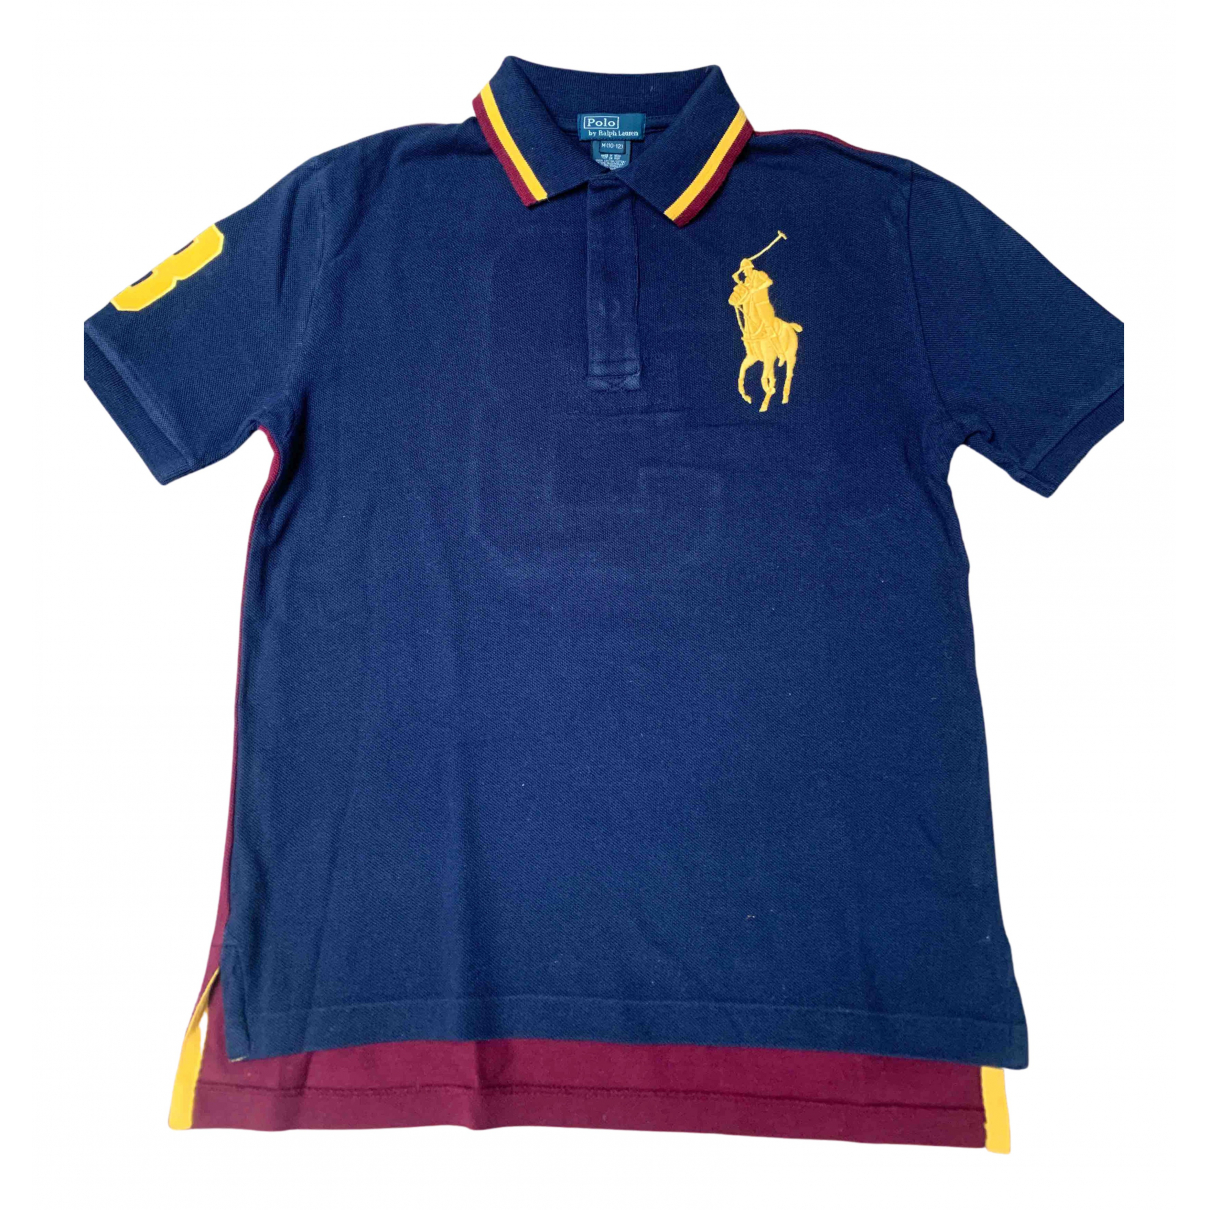 Polo Ralph Lauren N Navy Cotton  top for Kids 10 years - until 56 inches UK